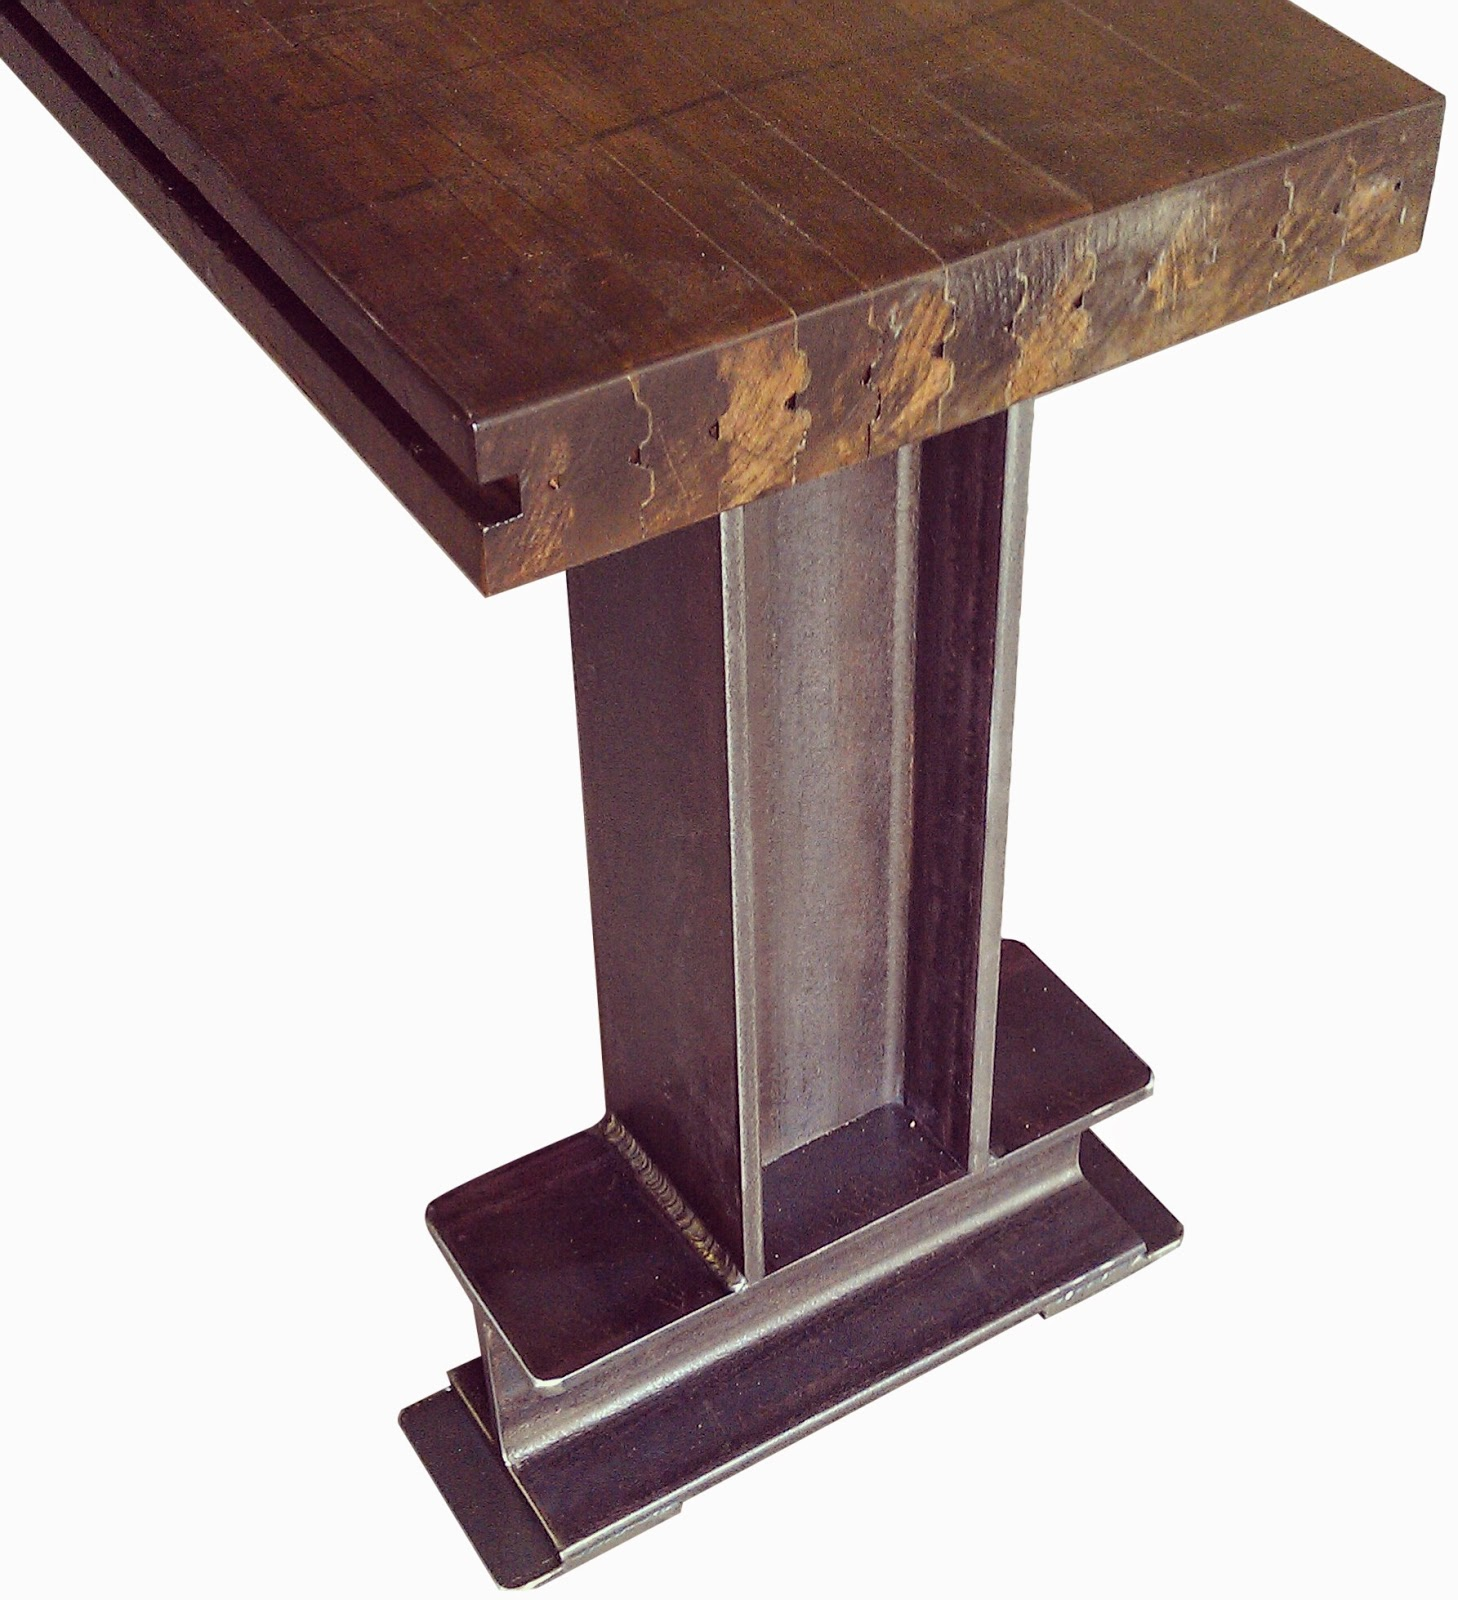 Urban Ironcraft : Metal Table Legs and Bases